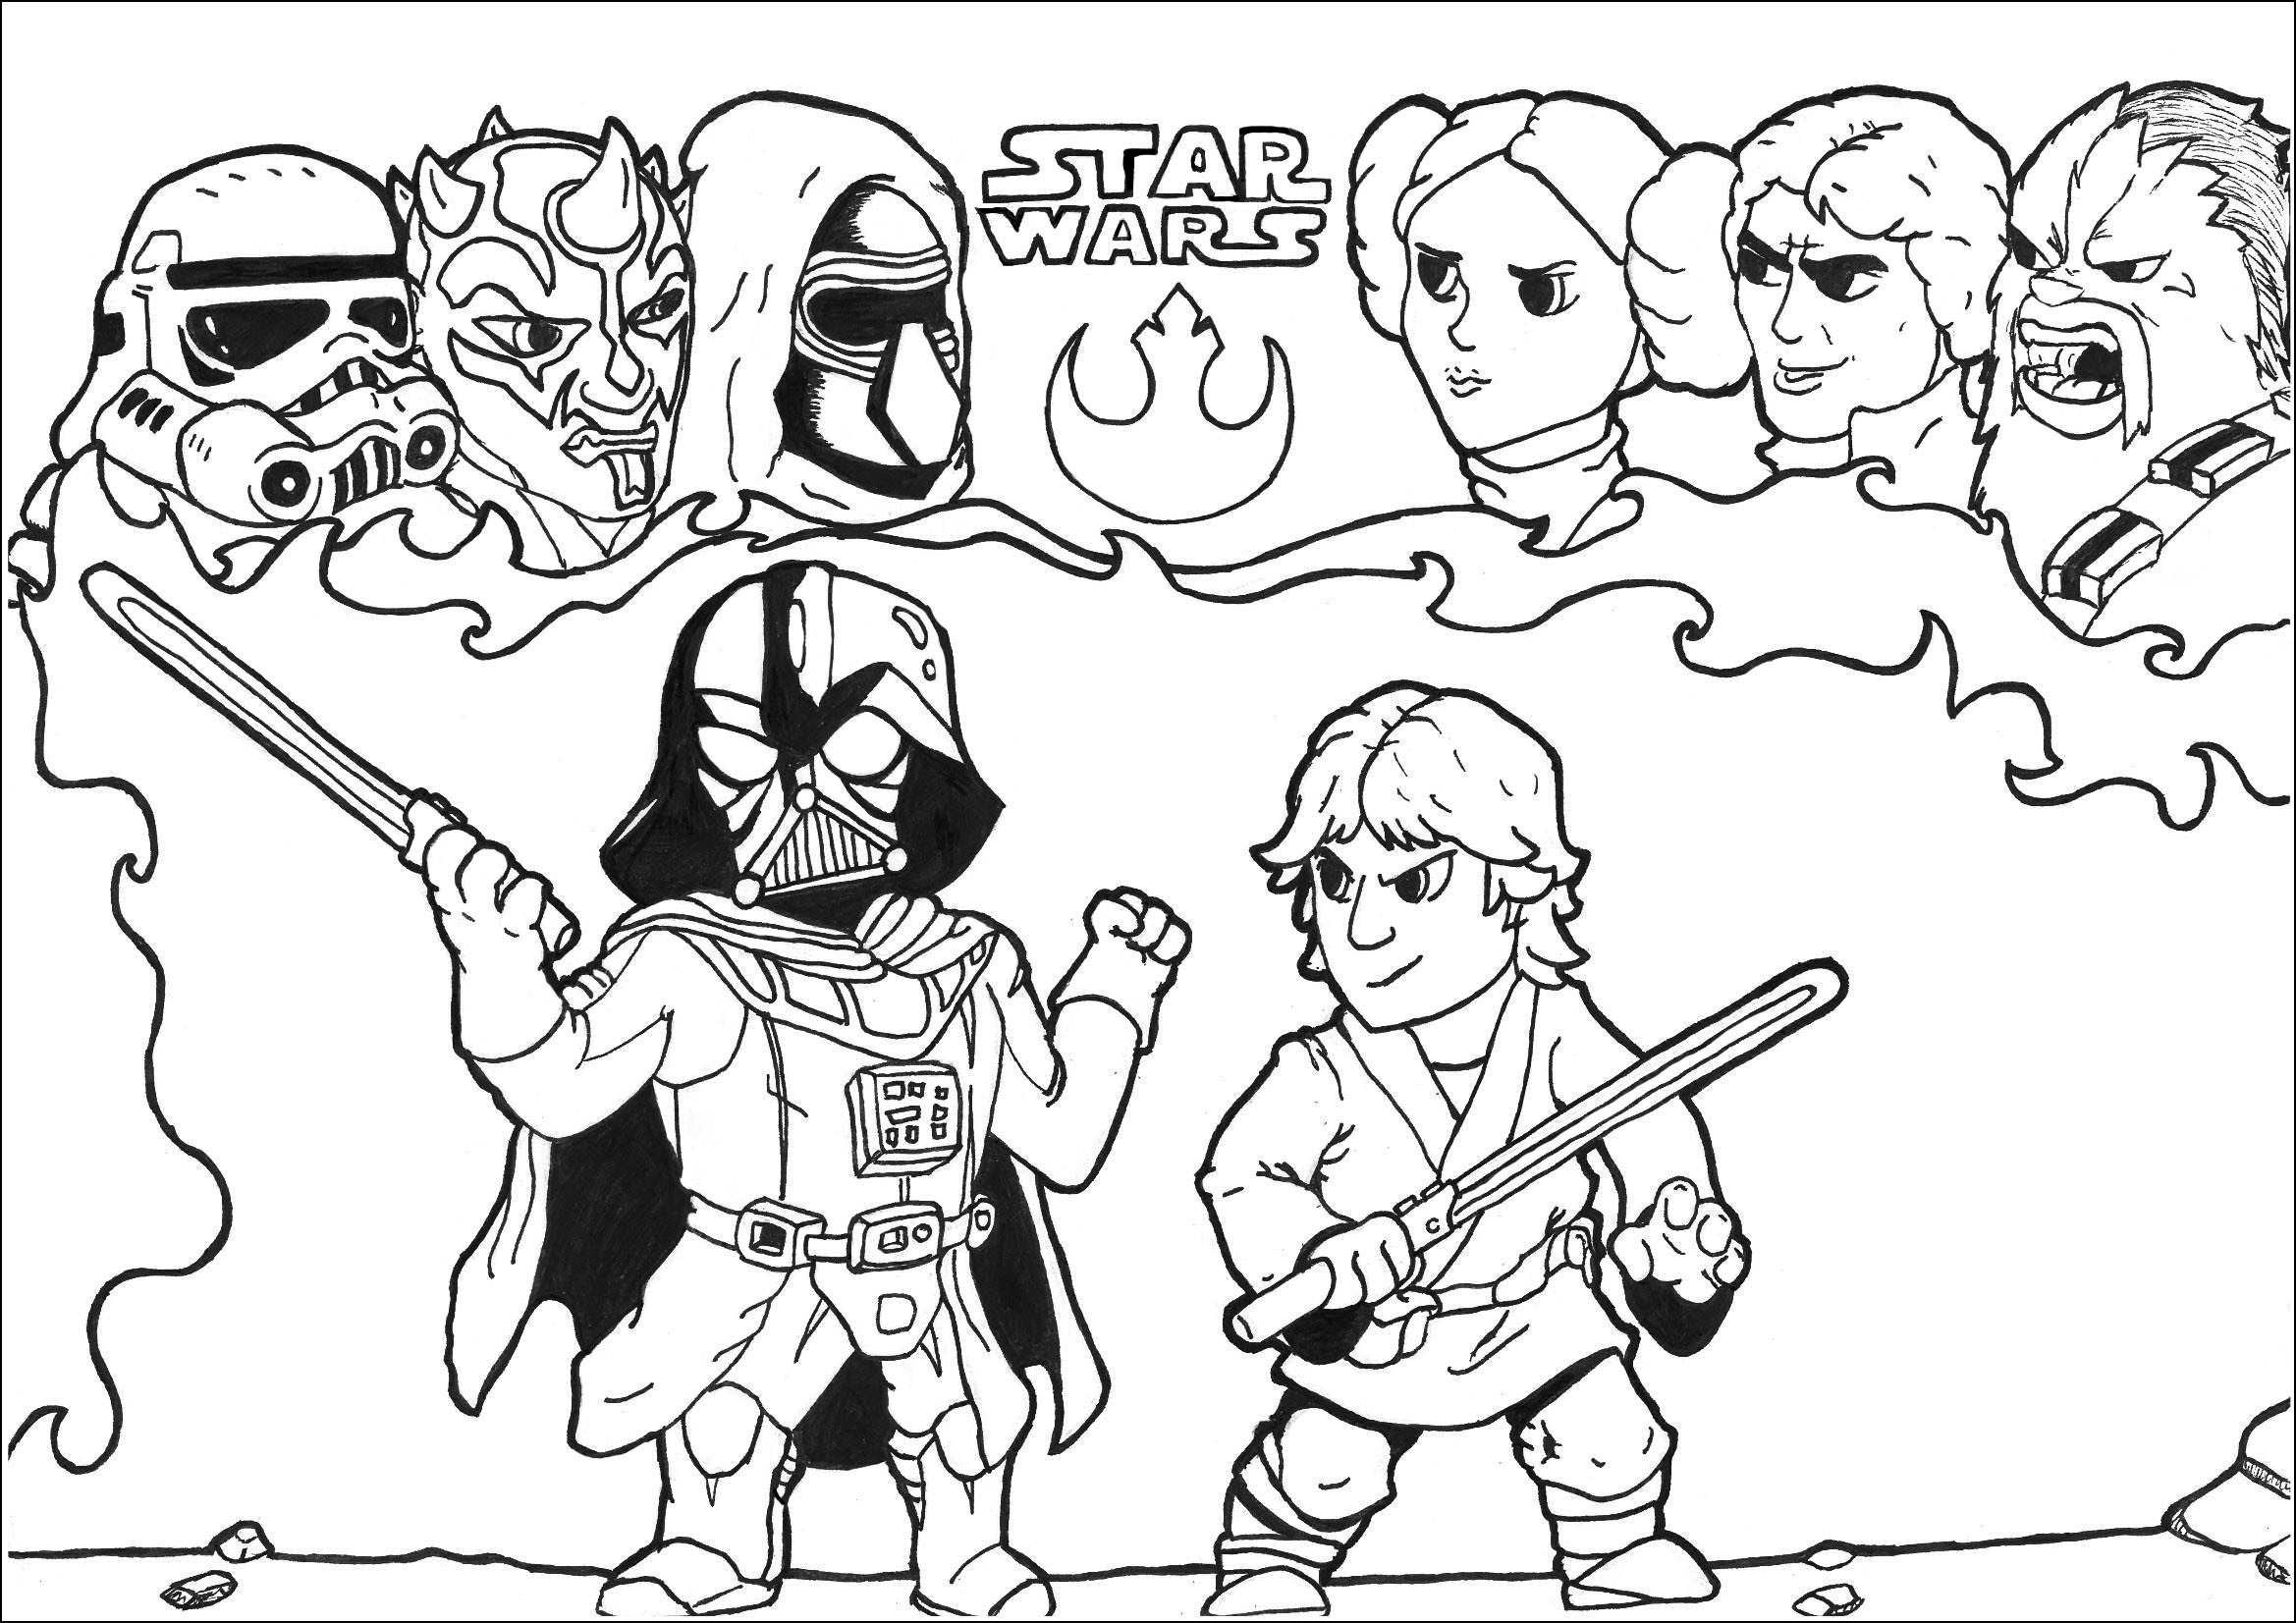 Star Wars Ausmalbilder Darth Vader Frisch Darth Vader Coloring Pages Inspirational 37 Malvorlagen Star Wars Stock